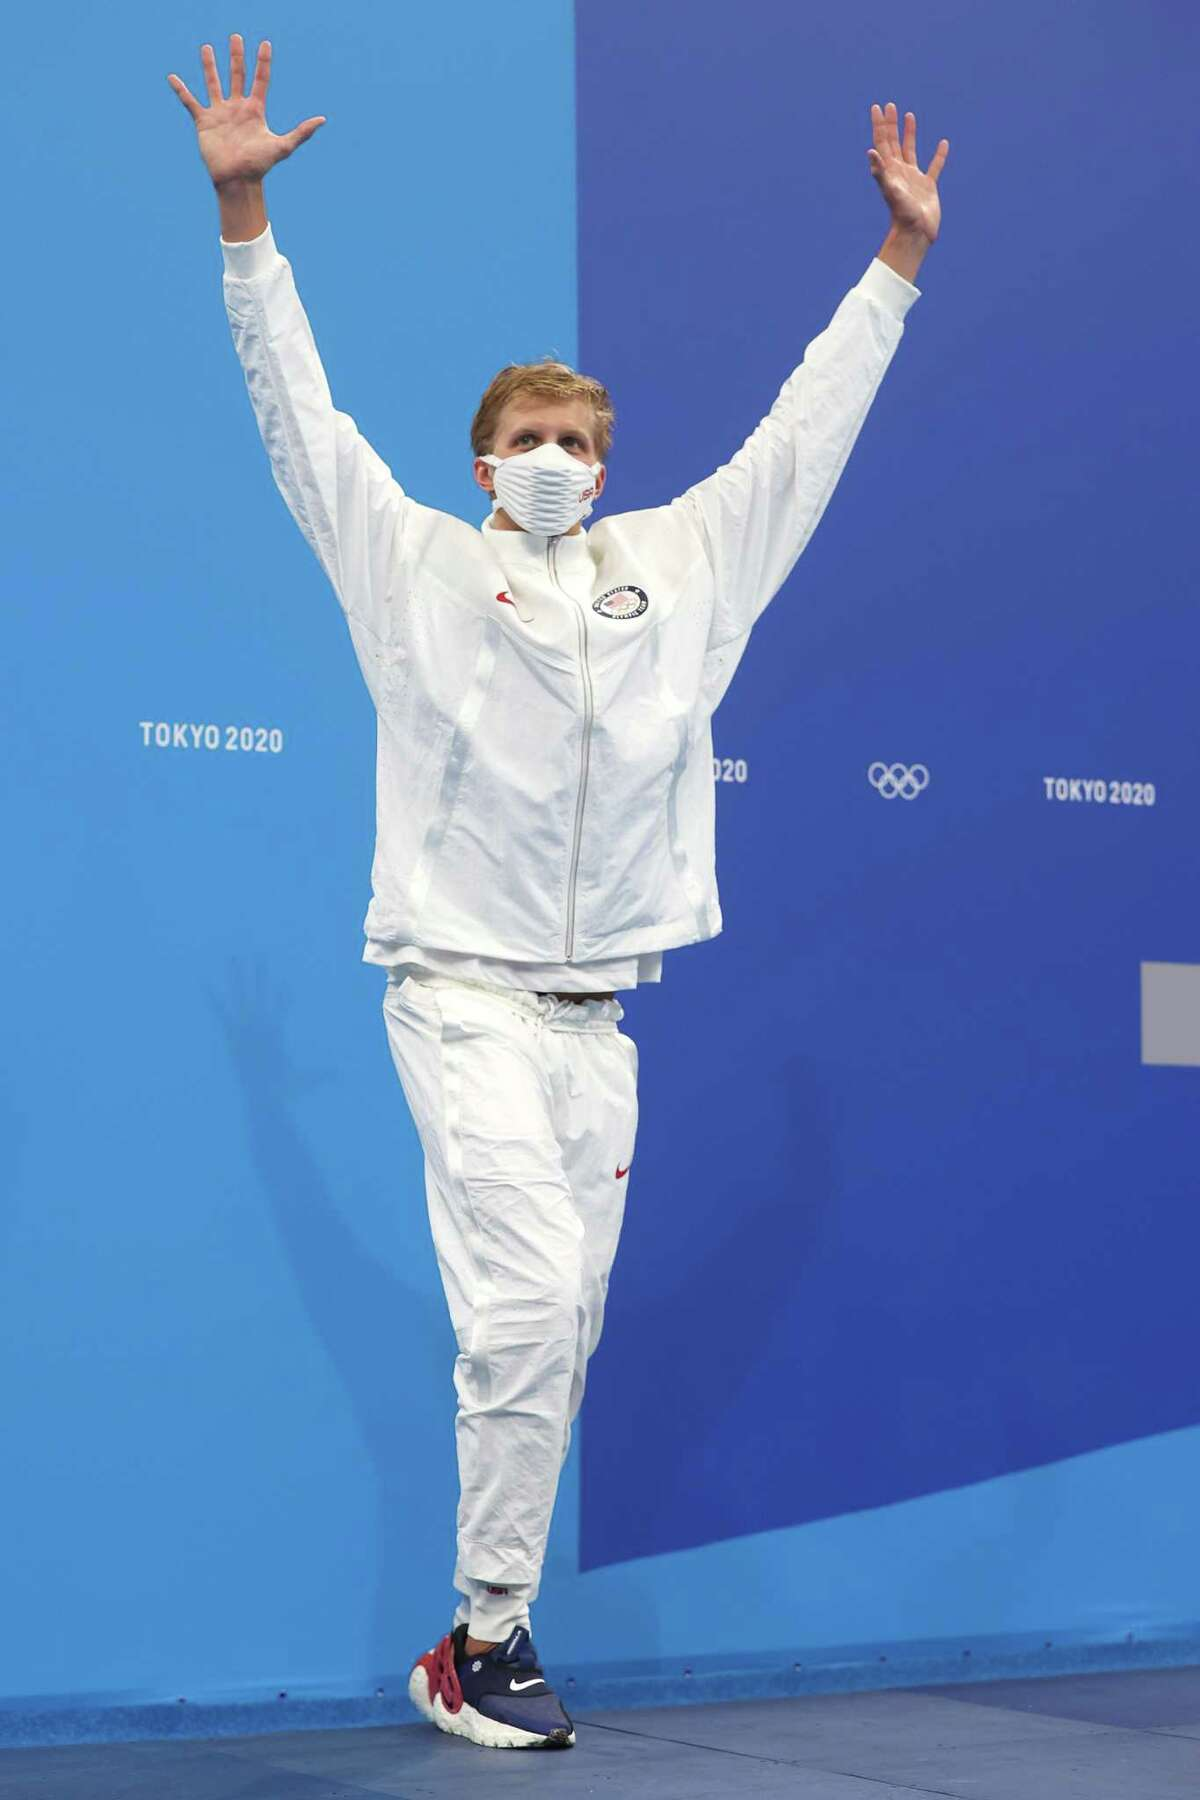 TOKYO, JAPAN - JULY 25: Kieran Smith of Team United States poses after winning the bronze medal in the Men's 400m Freestyle Final on day two of the Tokyo 2020 Olympic Games at Tokyo Aquatics Centre on July 25, 2021 in Tokyo, Japan. (Photo by Clive Rose/Getty Images)